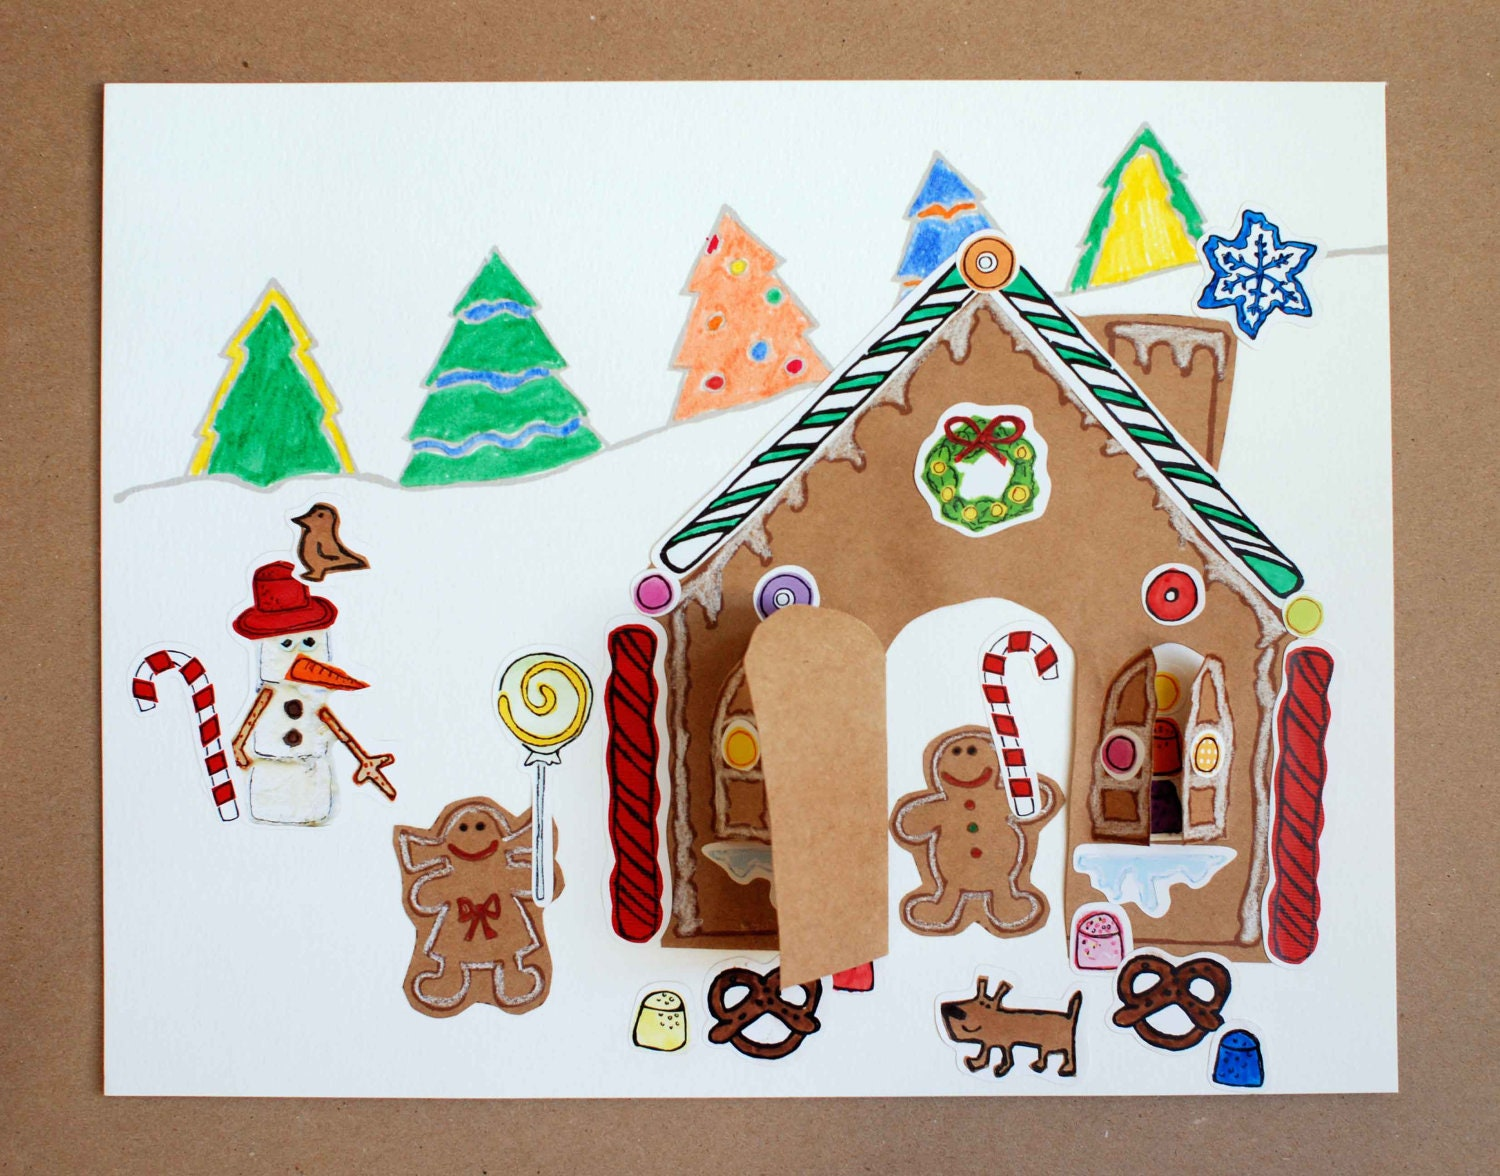 Christmas Craft Kit, Gingerbread House Paper Craft Kit for Kids, a Peekaboo House sticker collage kit for kids 5 & up - CandyandPaper